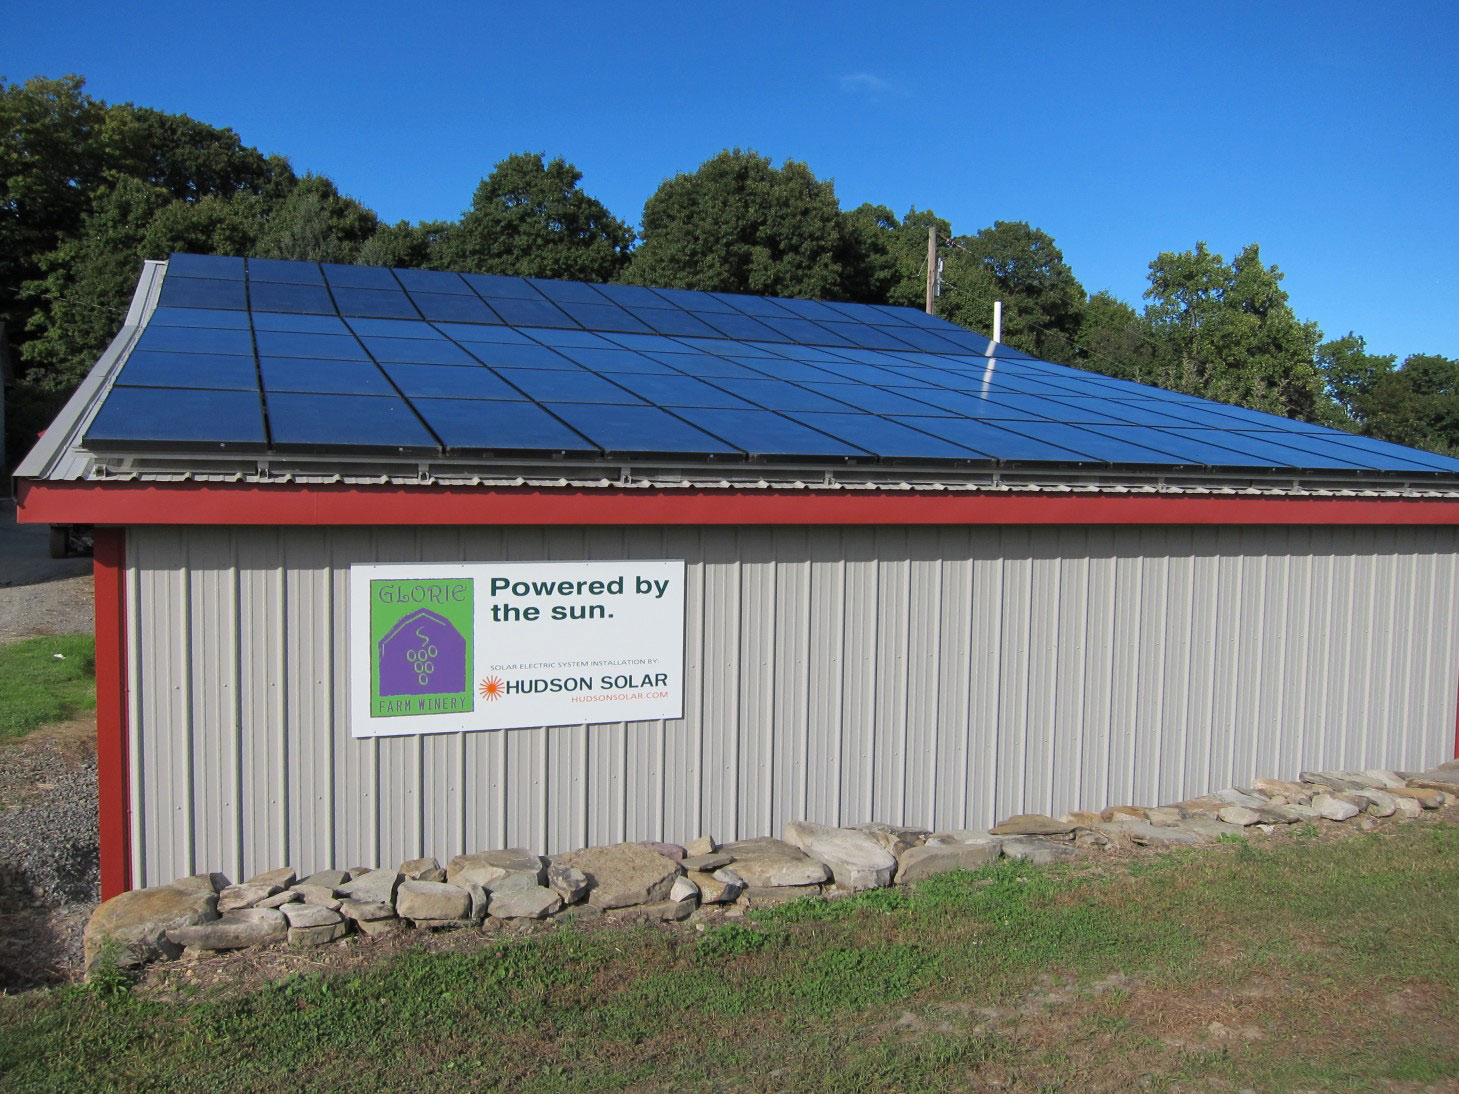 Barn with solar panels on the roof